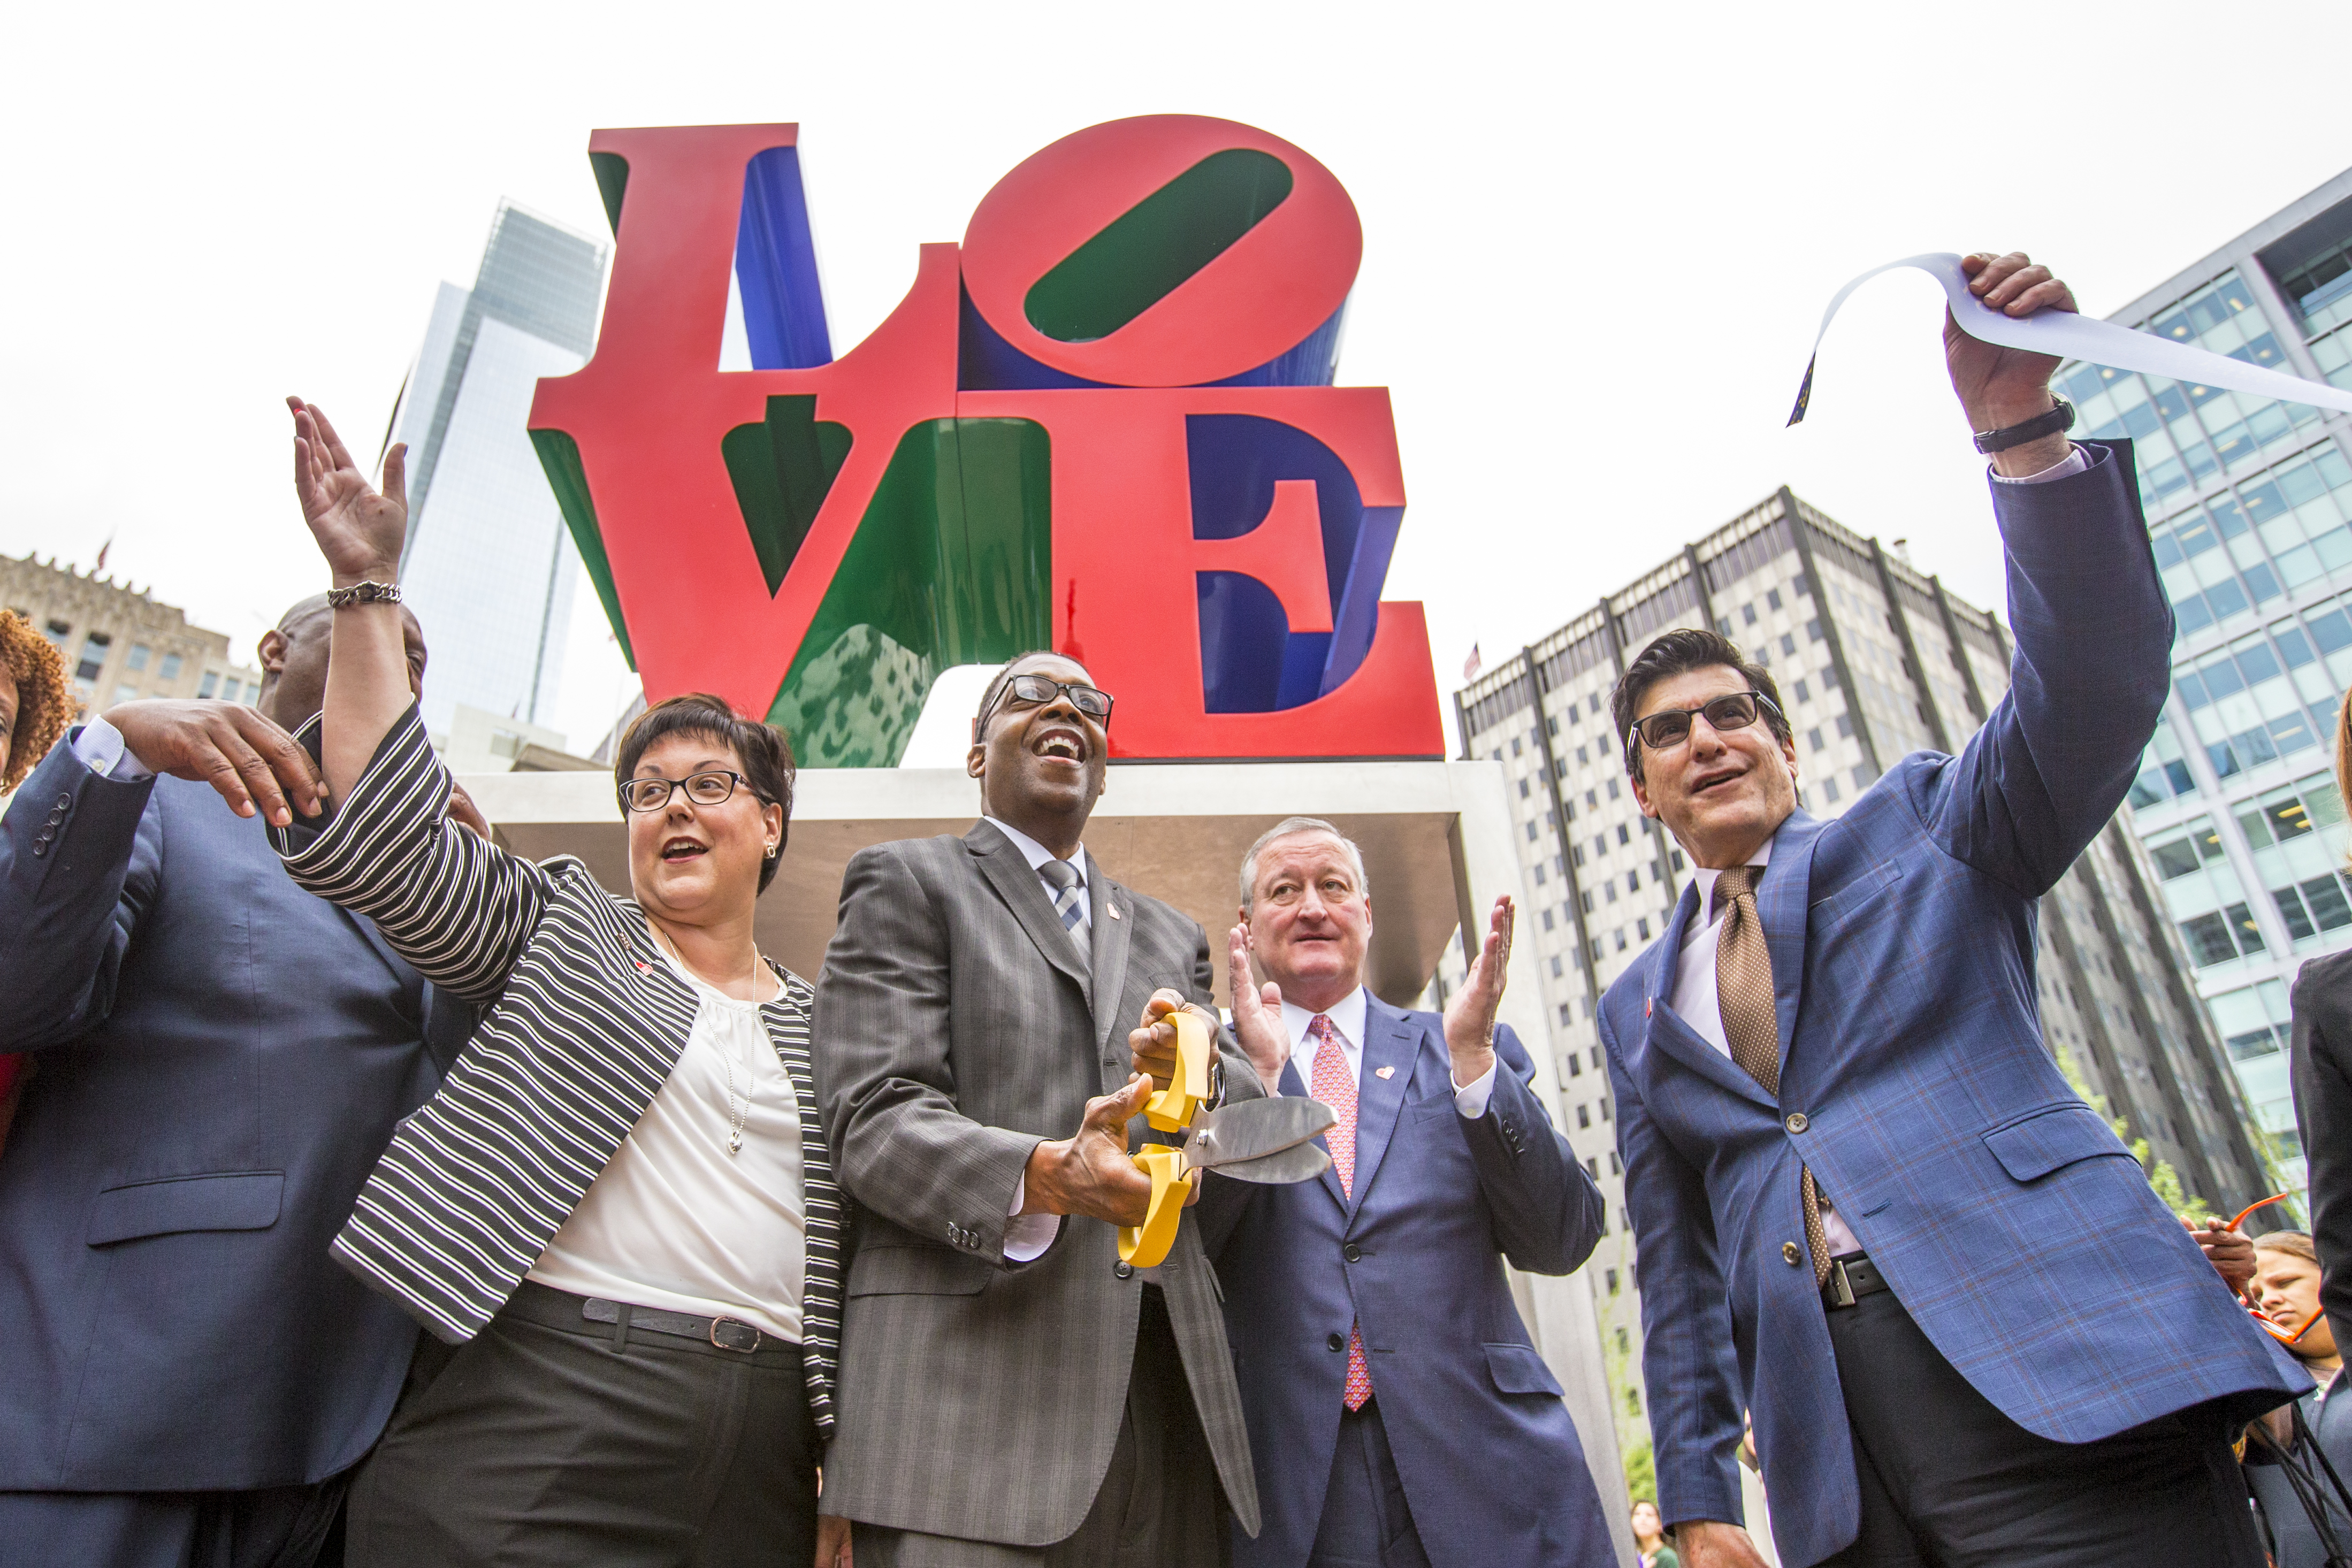 LOVE Park is officially rededicated on Wednesday, May 30, 2018, by (left to right) Philadelphia Parks and Recreation Commissioner Kathryn Ott Lovell, City Council President Darrell Clarke, Philadelphia Mayor Jim Kenney and Managing Director Michael DiBerardinis.